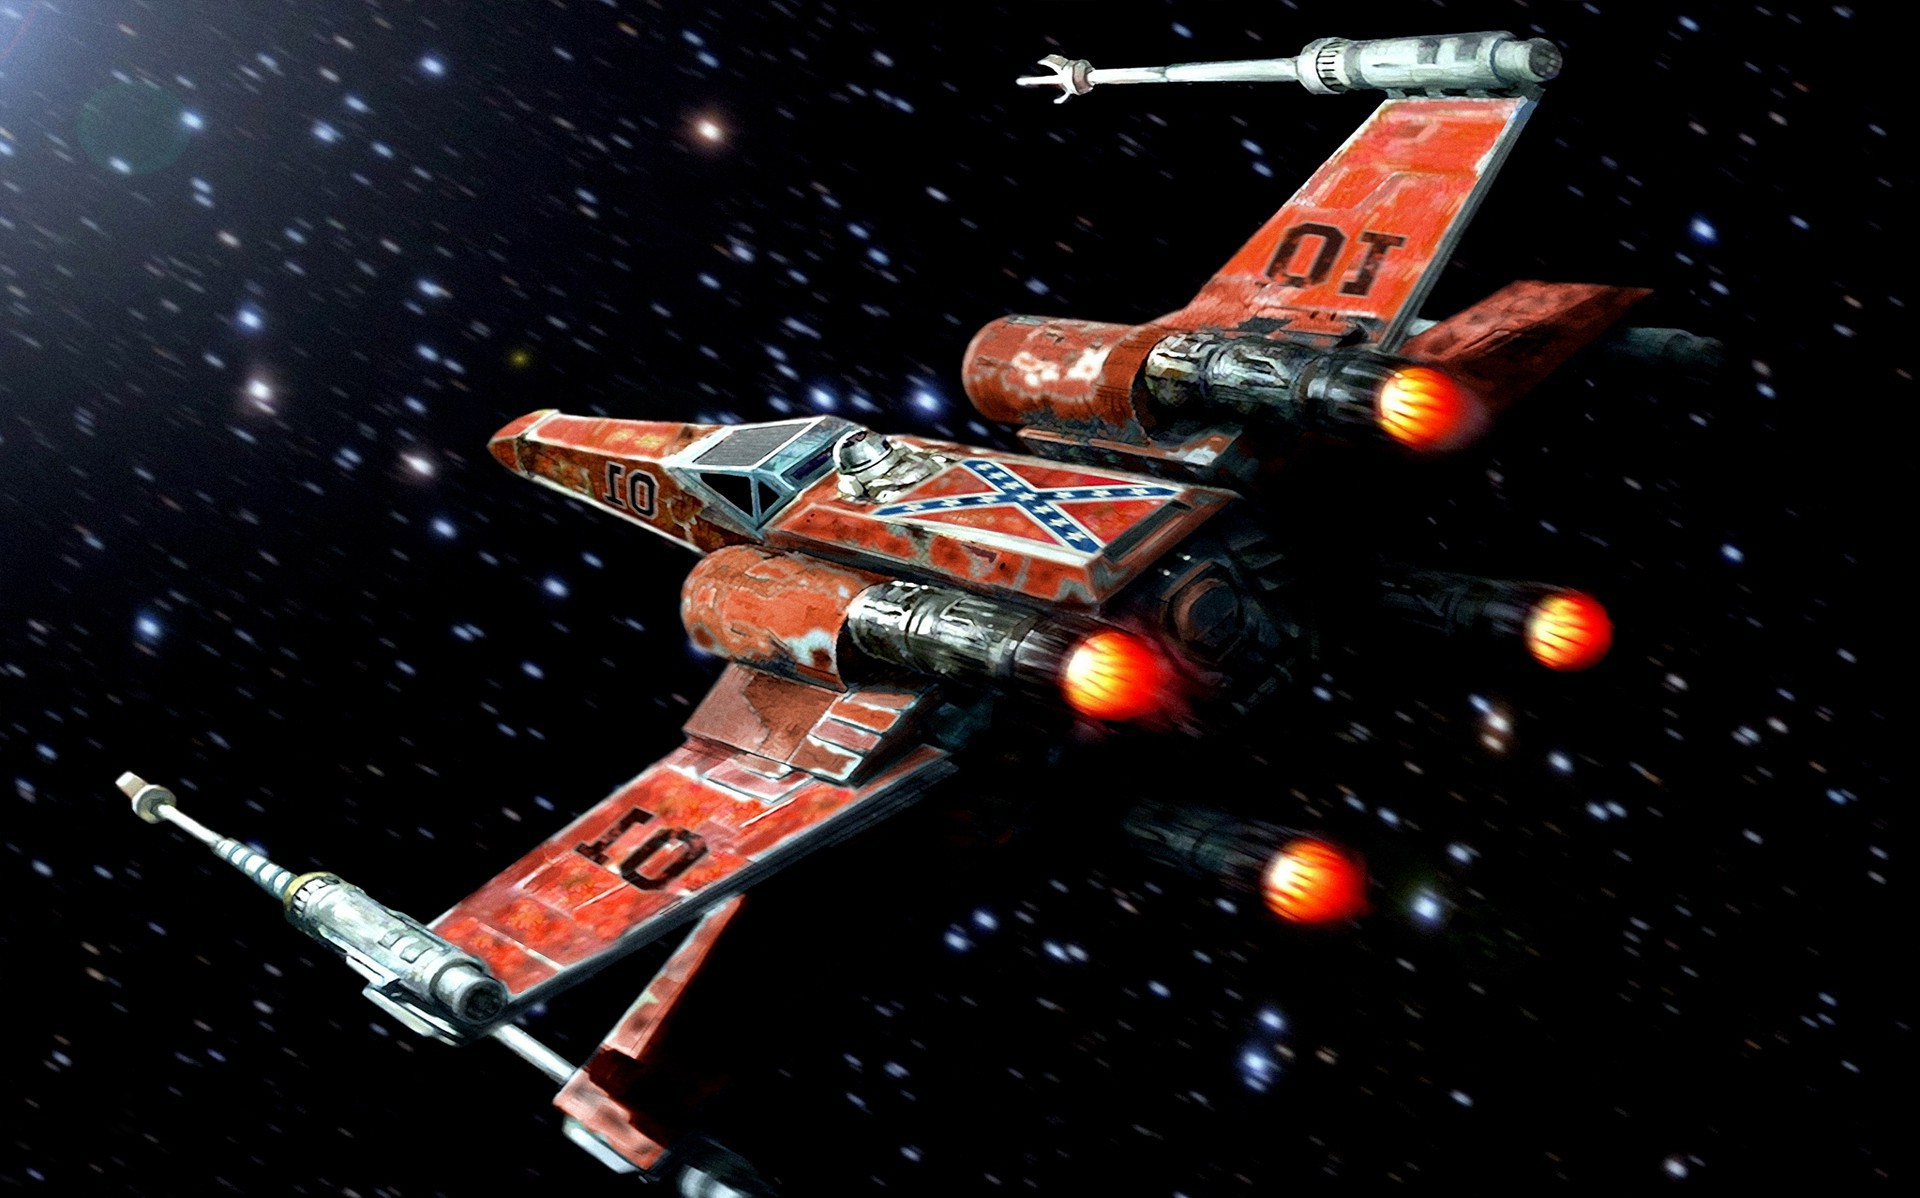 8 83563 rebel alliance x wing star wars wallpapers hd